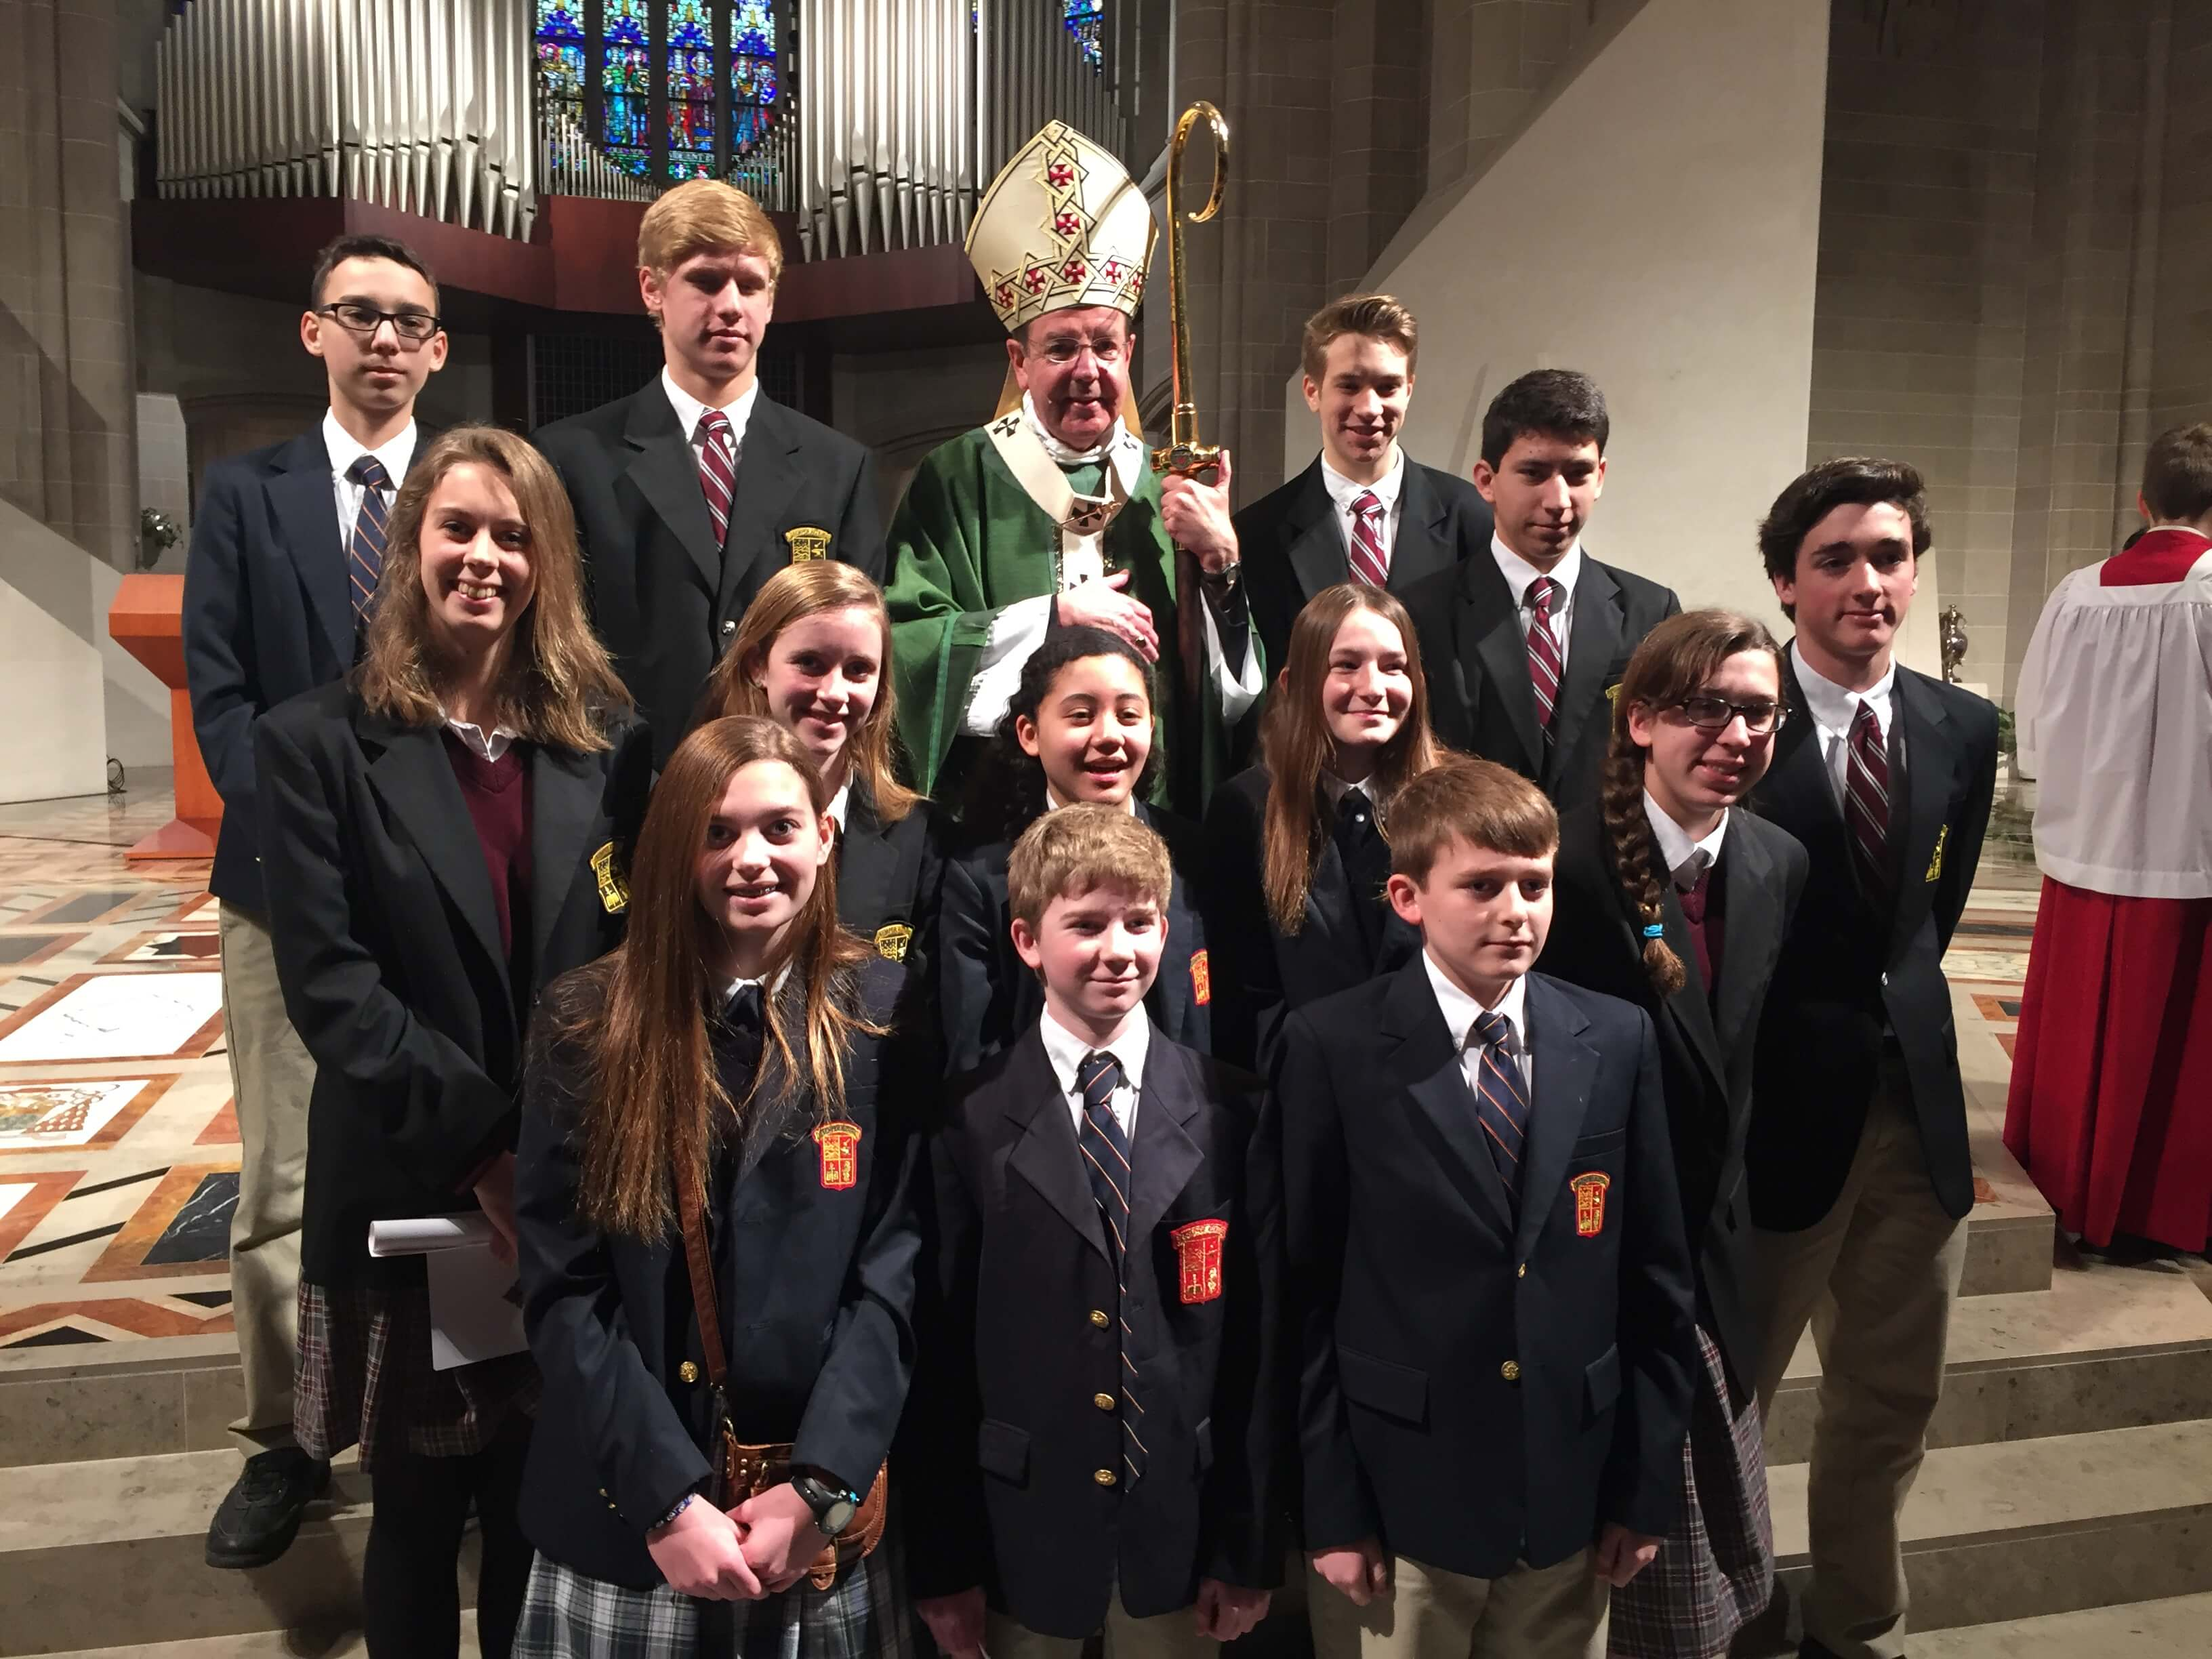 These students represented Everest Collegiate High School and Everest Academy at the Catholic Schools week mass celebrated by Archbishop Vigneron.